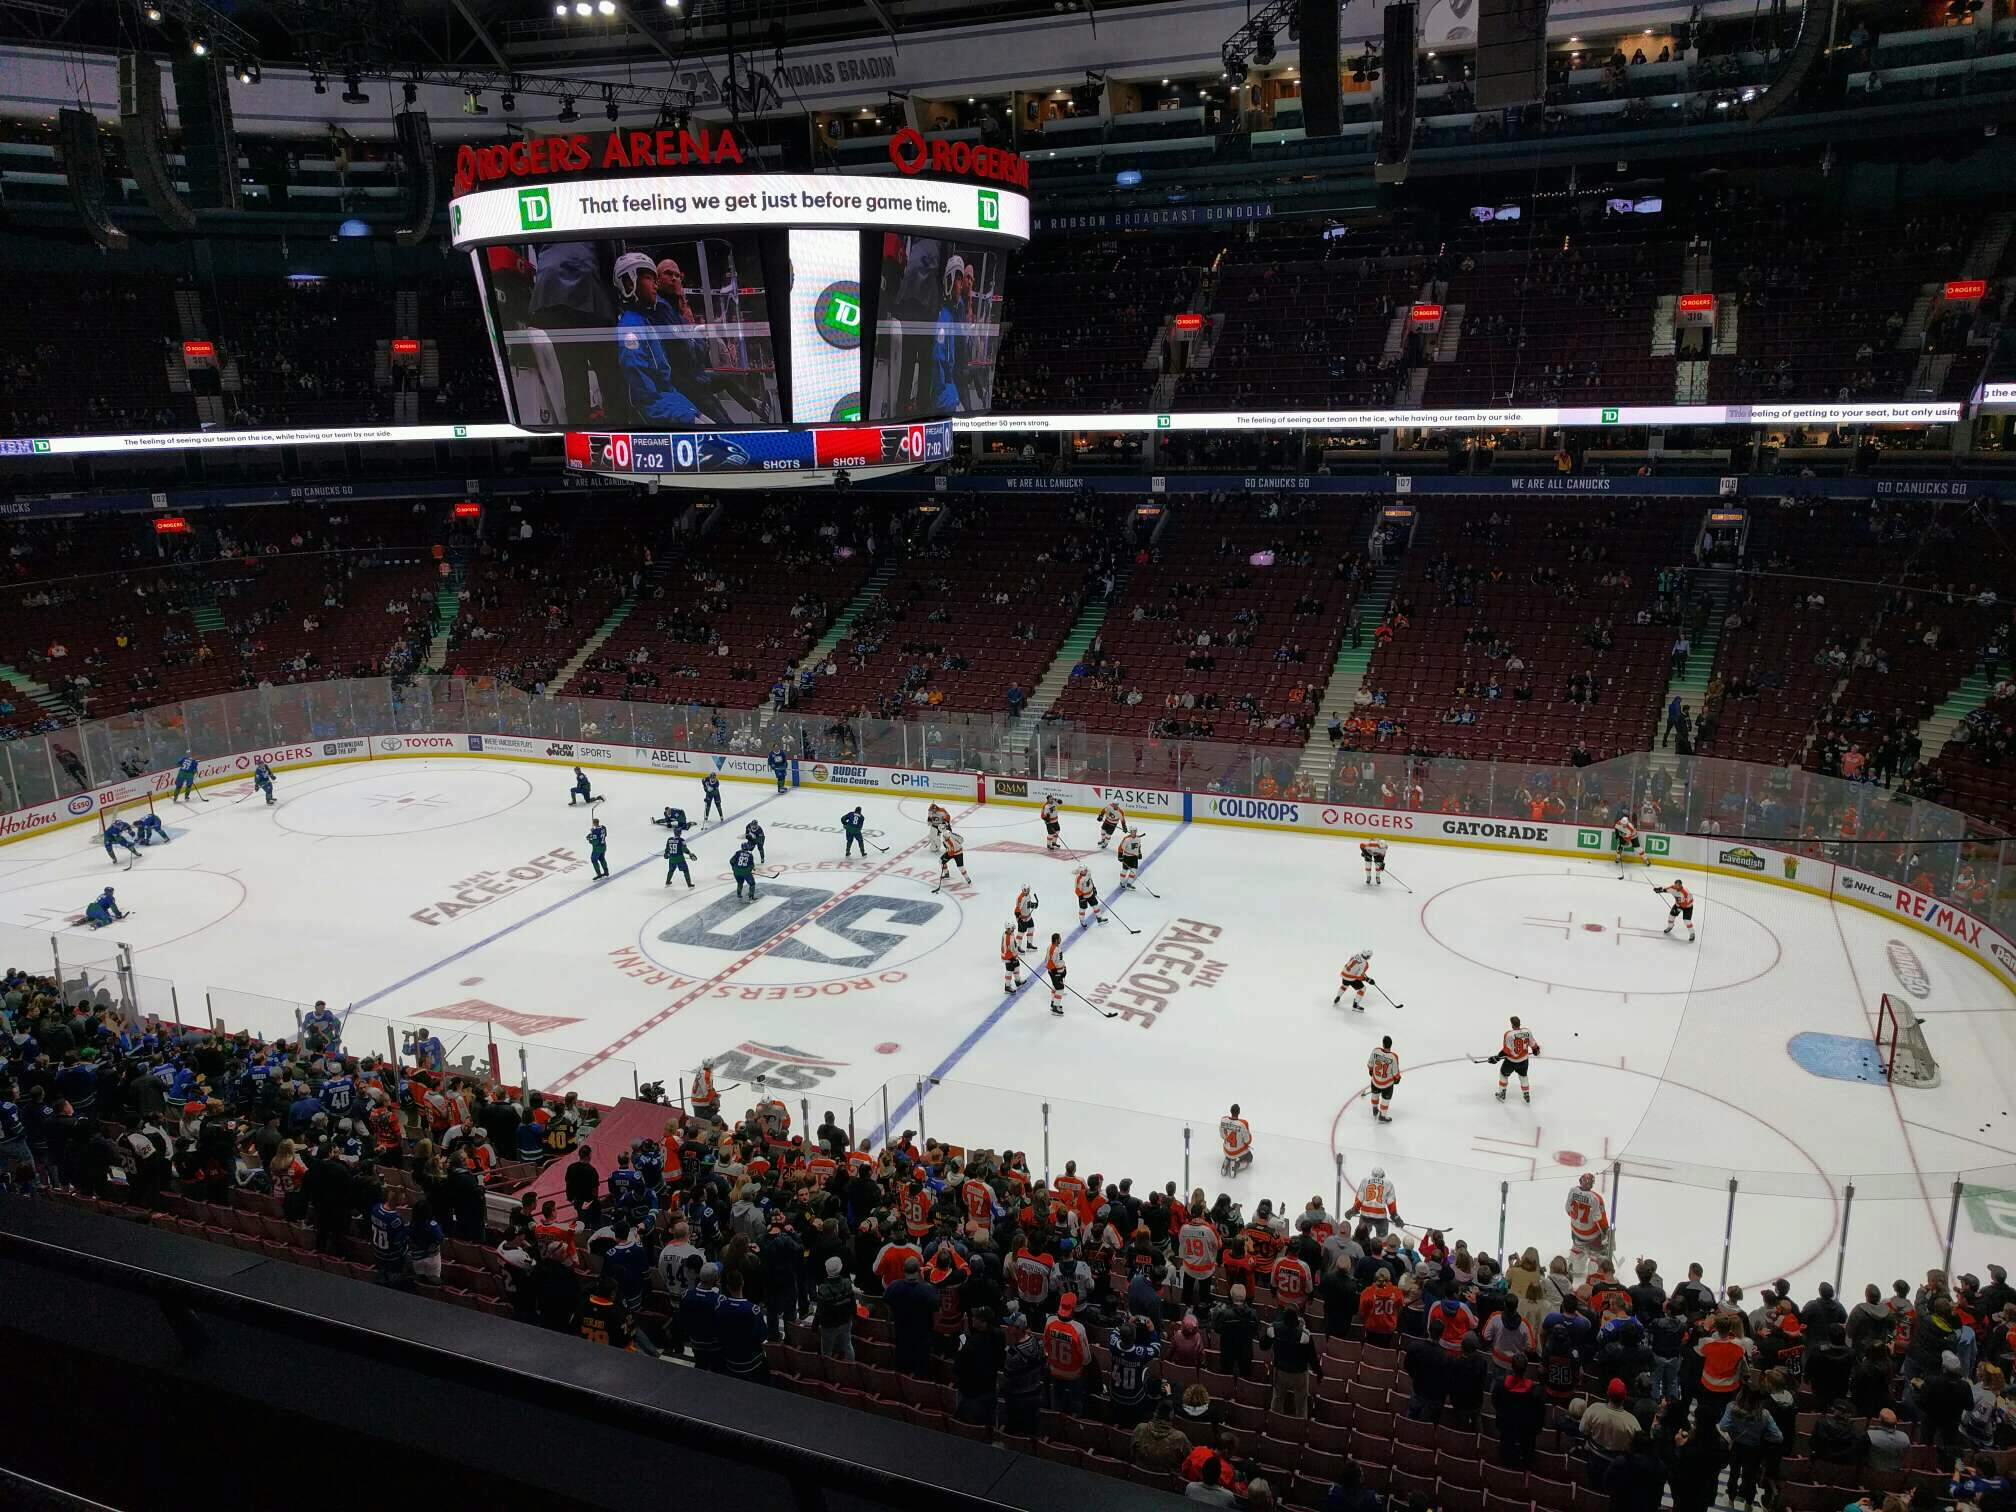 Rogers Arena Section 321 Row 3 Seat 102